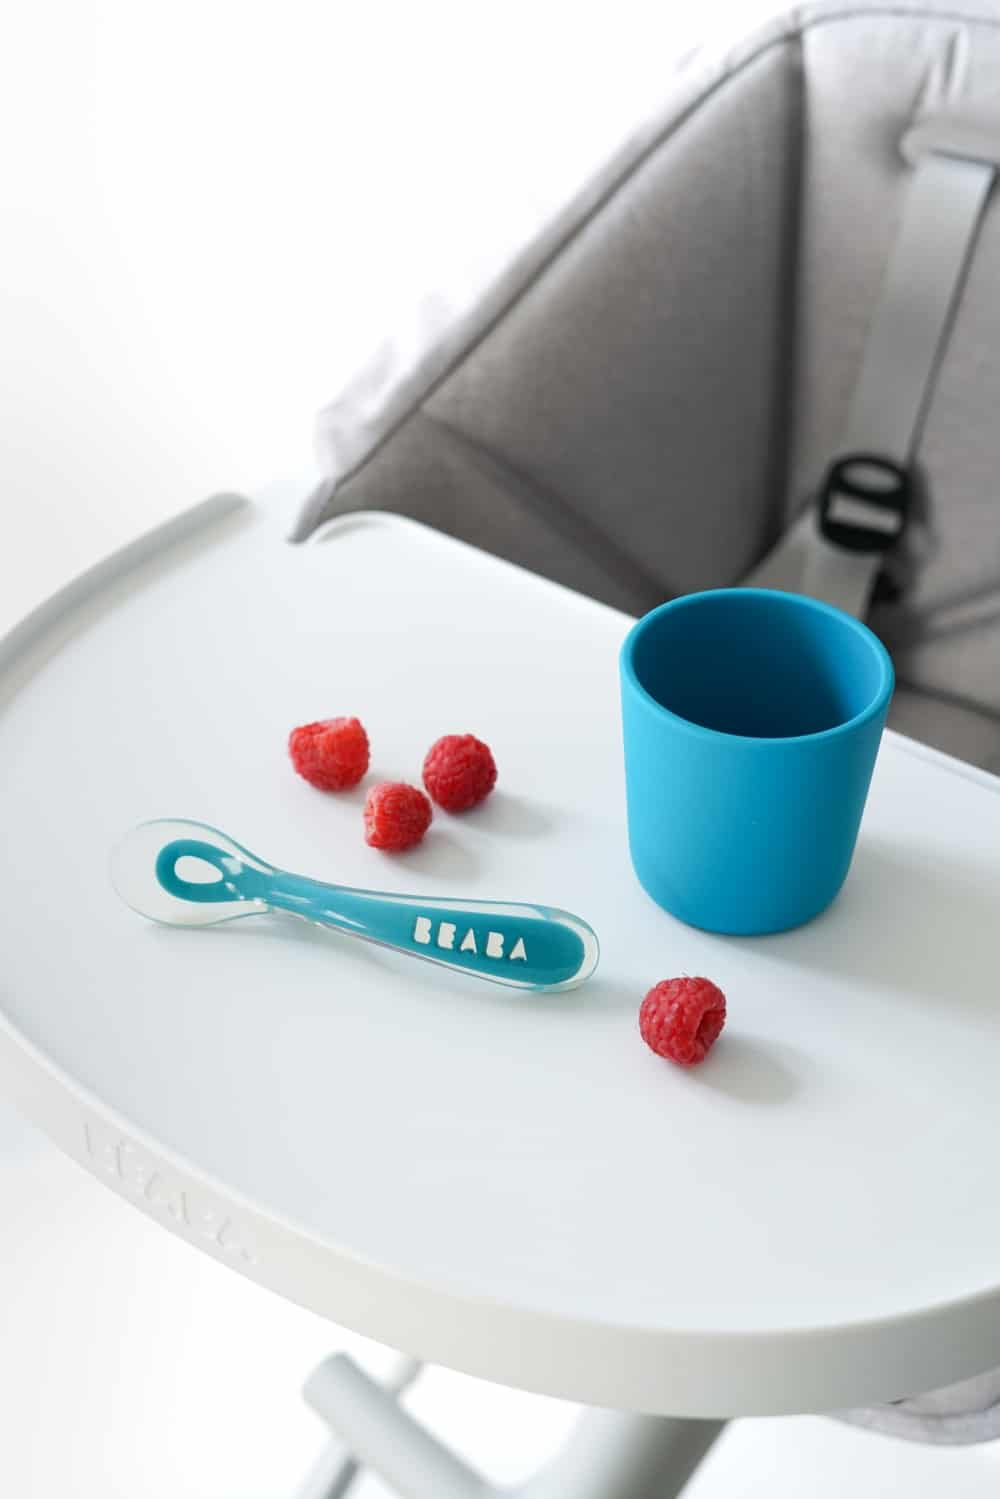 Beaba Non-slip silicone cup with spoon